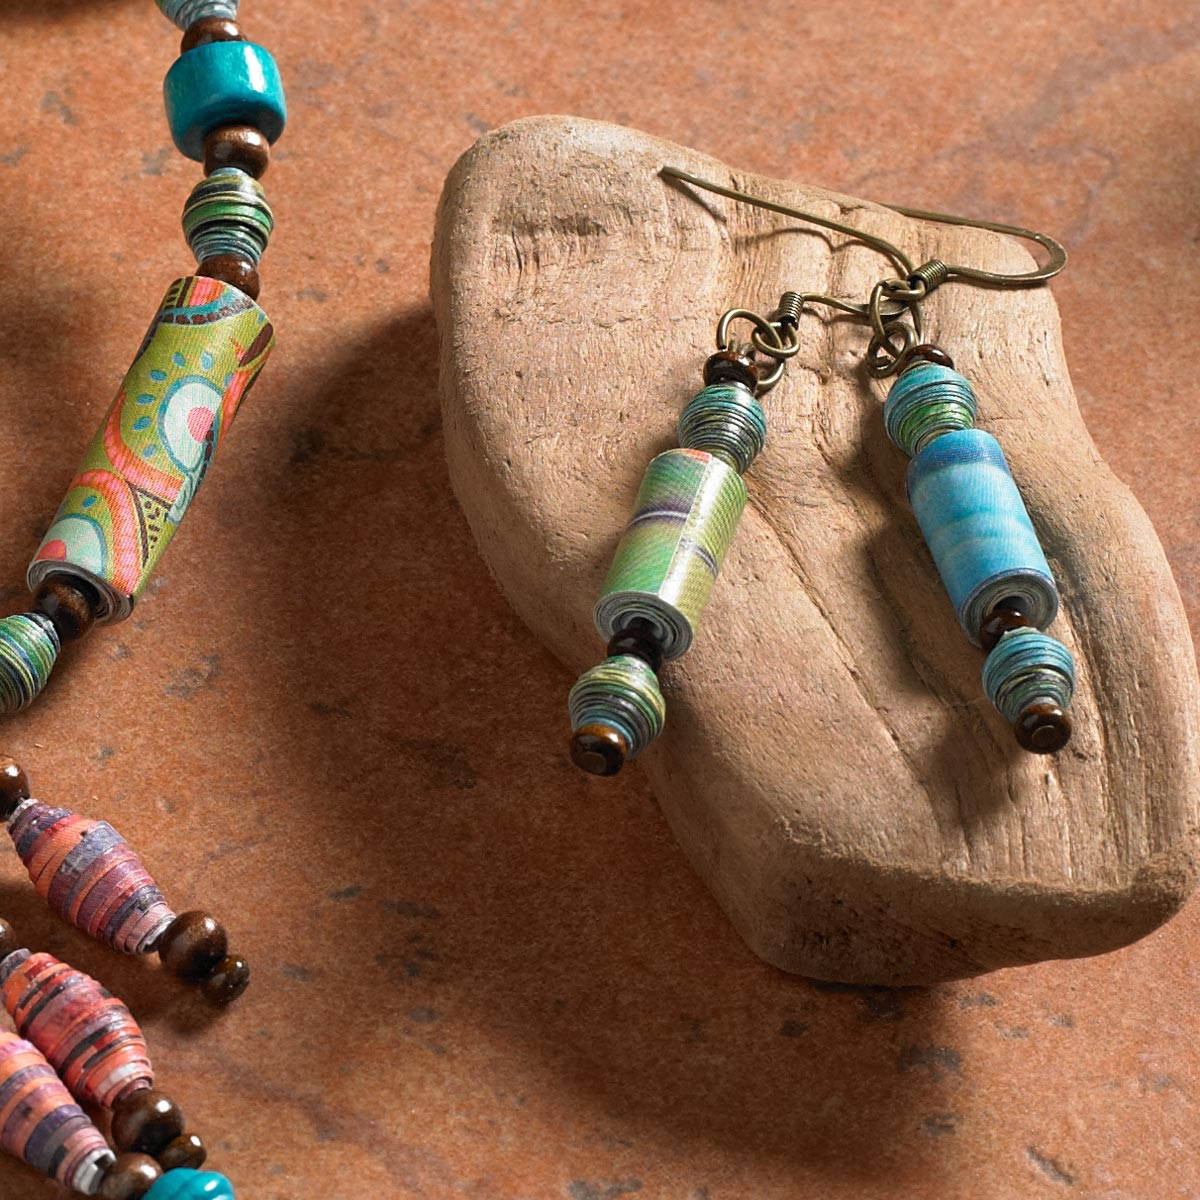 Mod Podge DIY Jewelry Project Idea